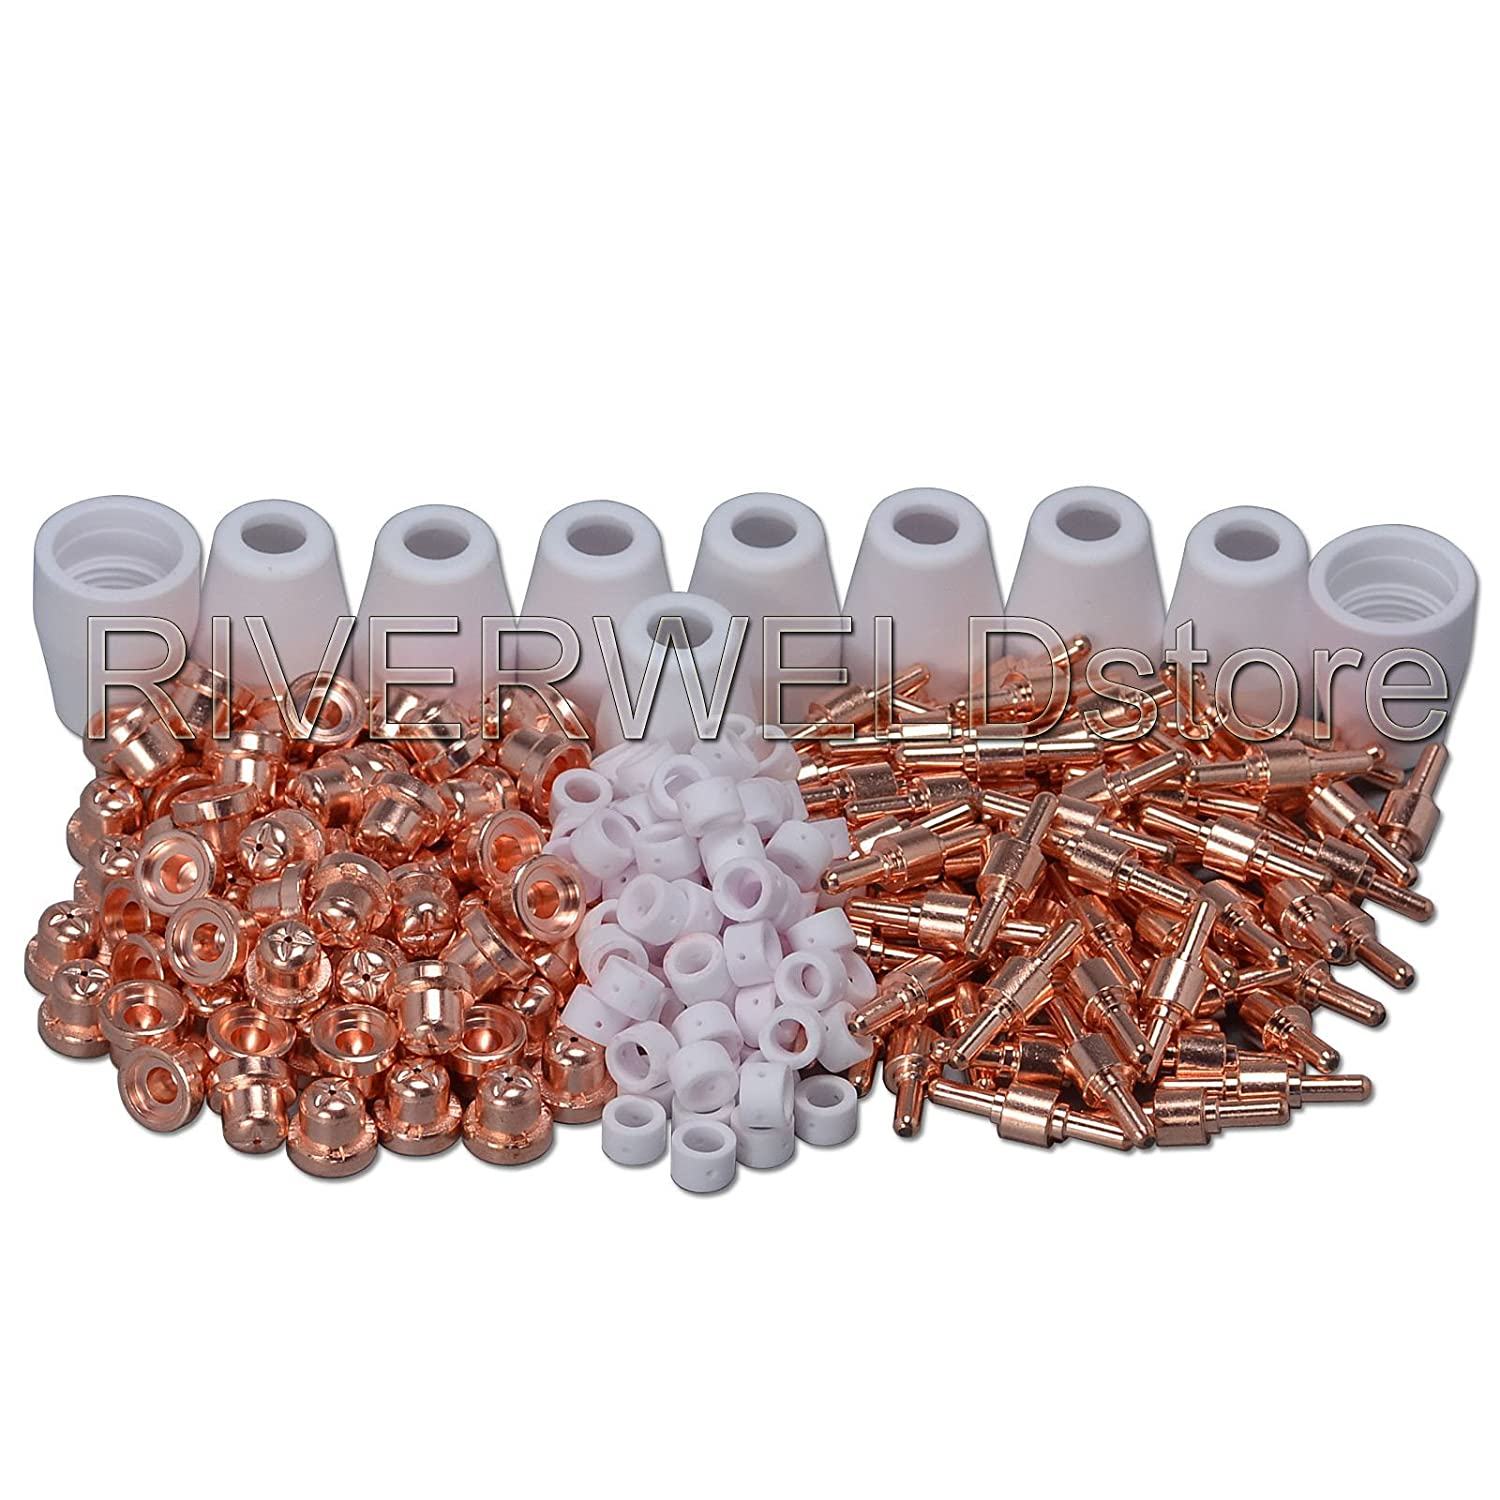 235pcs LG-40 PT-31 Air decoupe plasma pieces de rechange Consommables CUT-40 CUT-50D CT-312 RIVERWELDstore